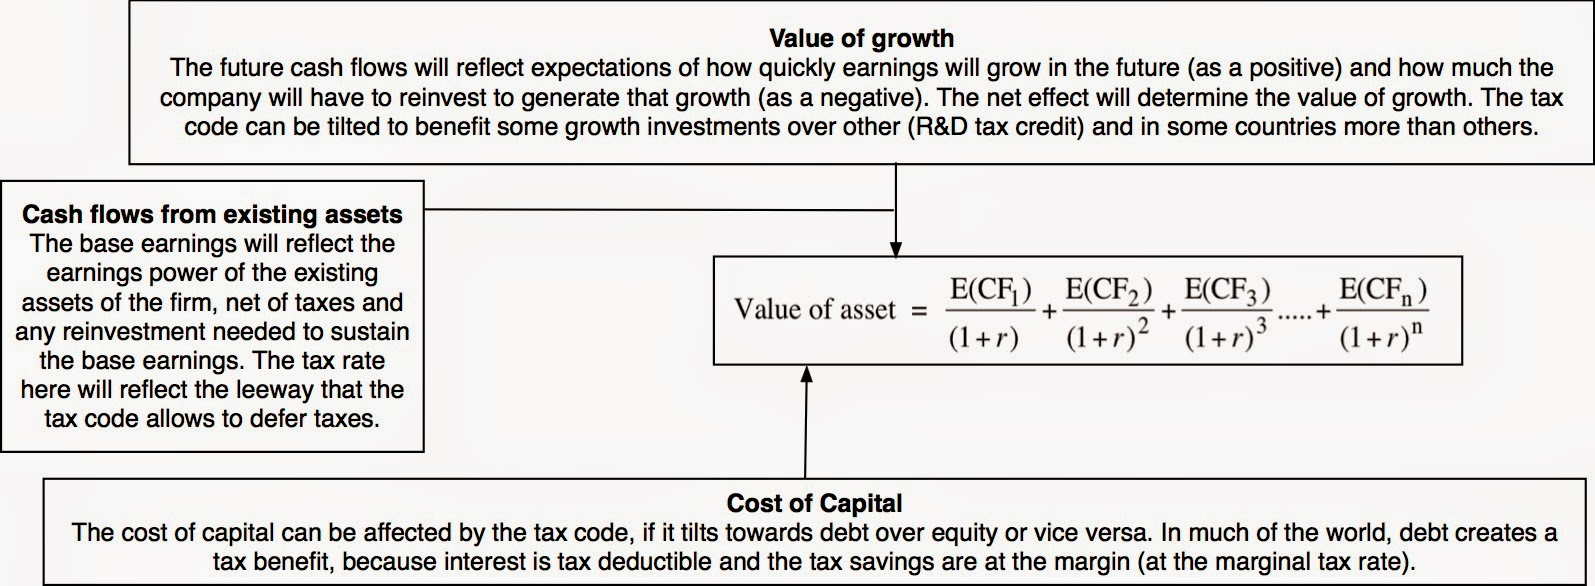 dcf valuation This is not a full company valuation training course, but one way of valuing a business is to view a company as the sum of its discounted cash flows discounted cash flows (dcf) under the dcf valuation methodology, the company is seen as the sum of its projected cash flows cash flows that are.